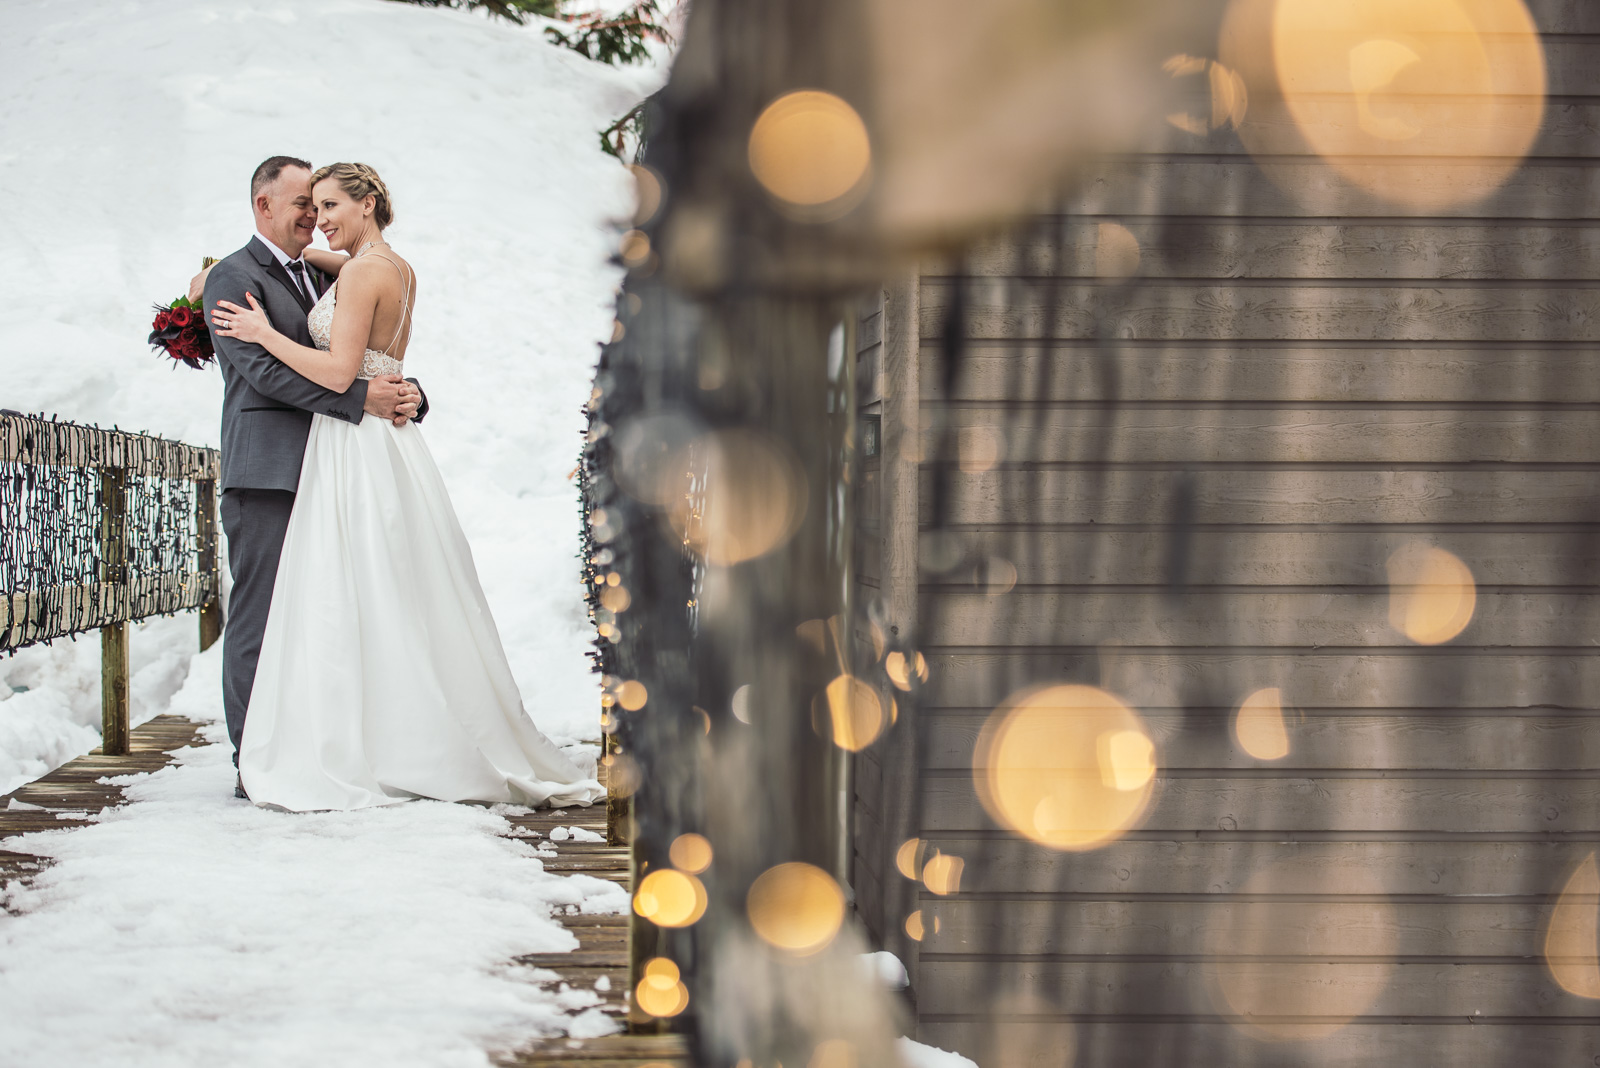 vancouver-island-wedding-photographers-grouse-mountain-winter-wedding-35.jpg